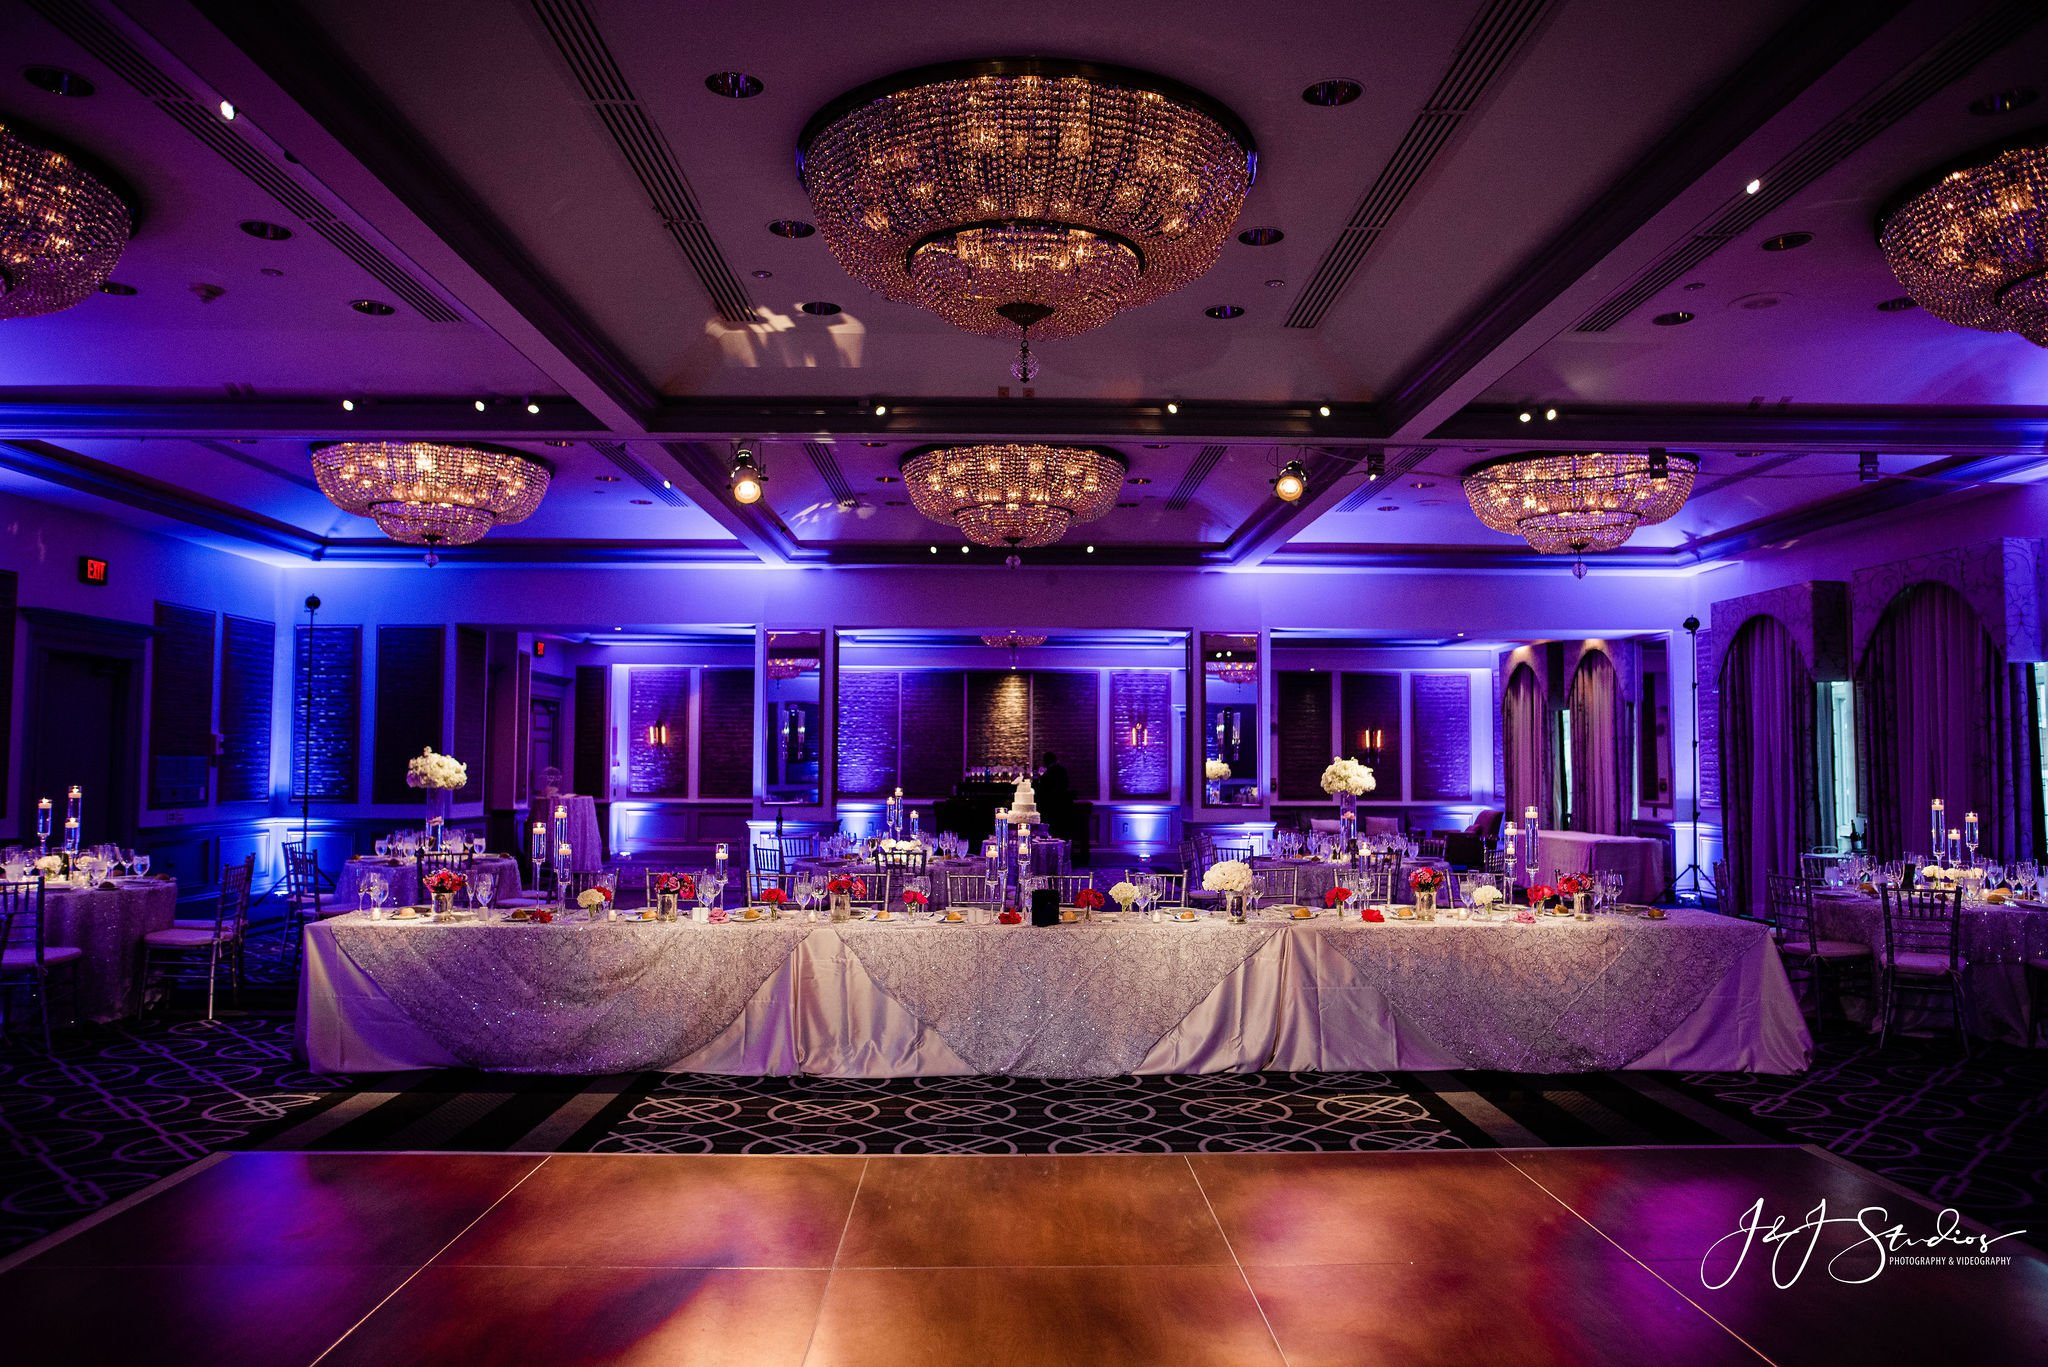 A table setup for a wedding at the Rittenhouse Hotel Venue in Philadelphia